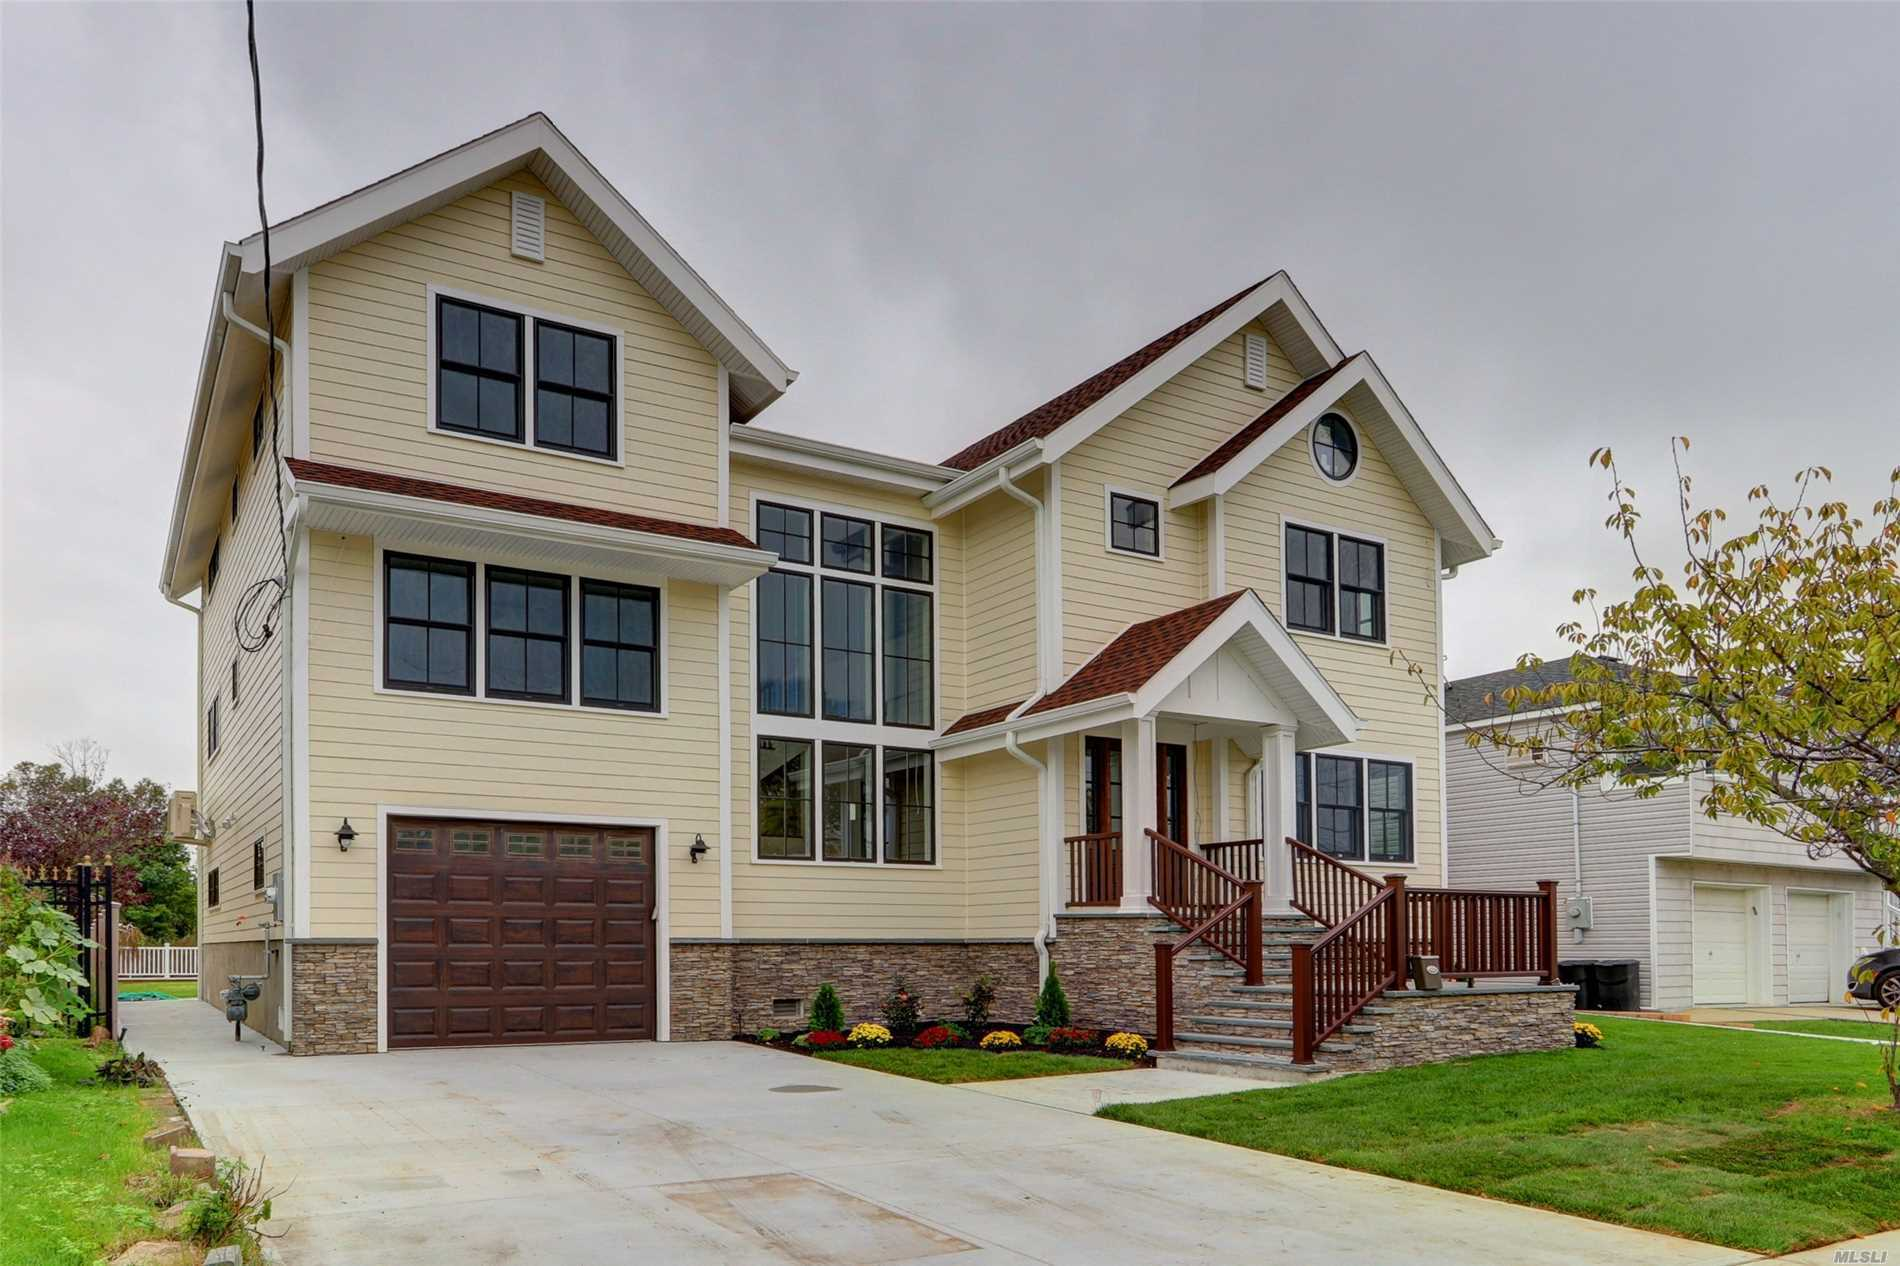 Diamond New Construction Contemporary Waterfront 5 Houses From Open Bay. No Expenses Spared In This 6 Bedroom 4.5 Bath Home. Open Layout Kitchen And Great Room With Fantastic Waterviews. Brand New Solar Panels/Inverters. Double Budheras Eff Boiler System With Hot Water Heater On Demand. Master Bedroom Suite With Spectacular Open Bay Views From Balcony. Walk In Enormous Closet. Master Bath With Private Shower And Large Soaking Led Jacuzzi W/Heater. Set Up For Mother And Daughter!!